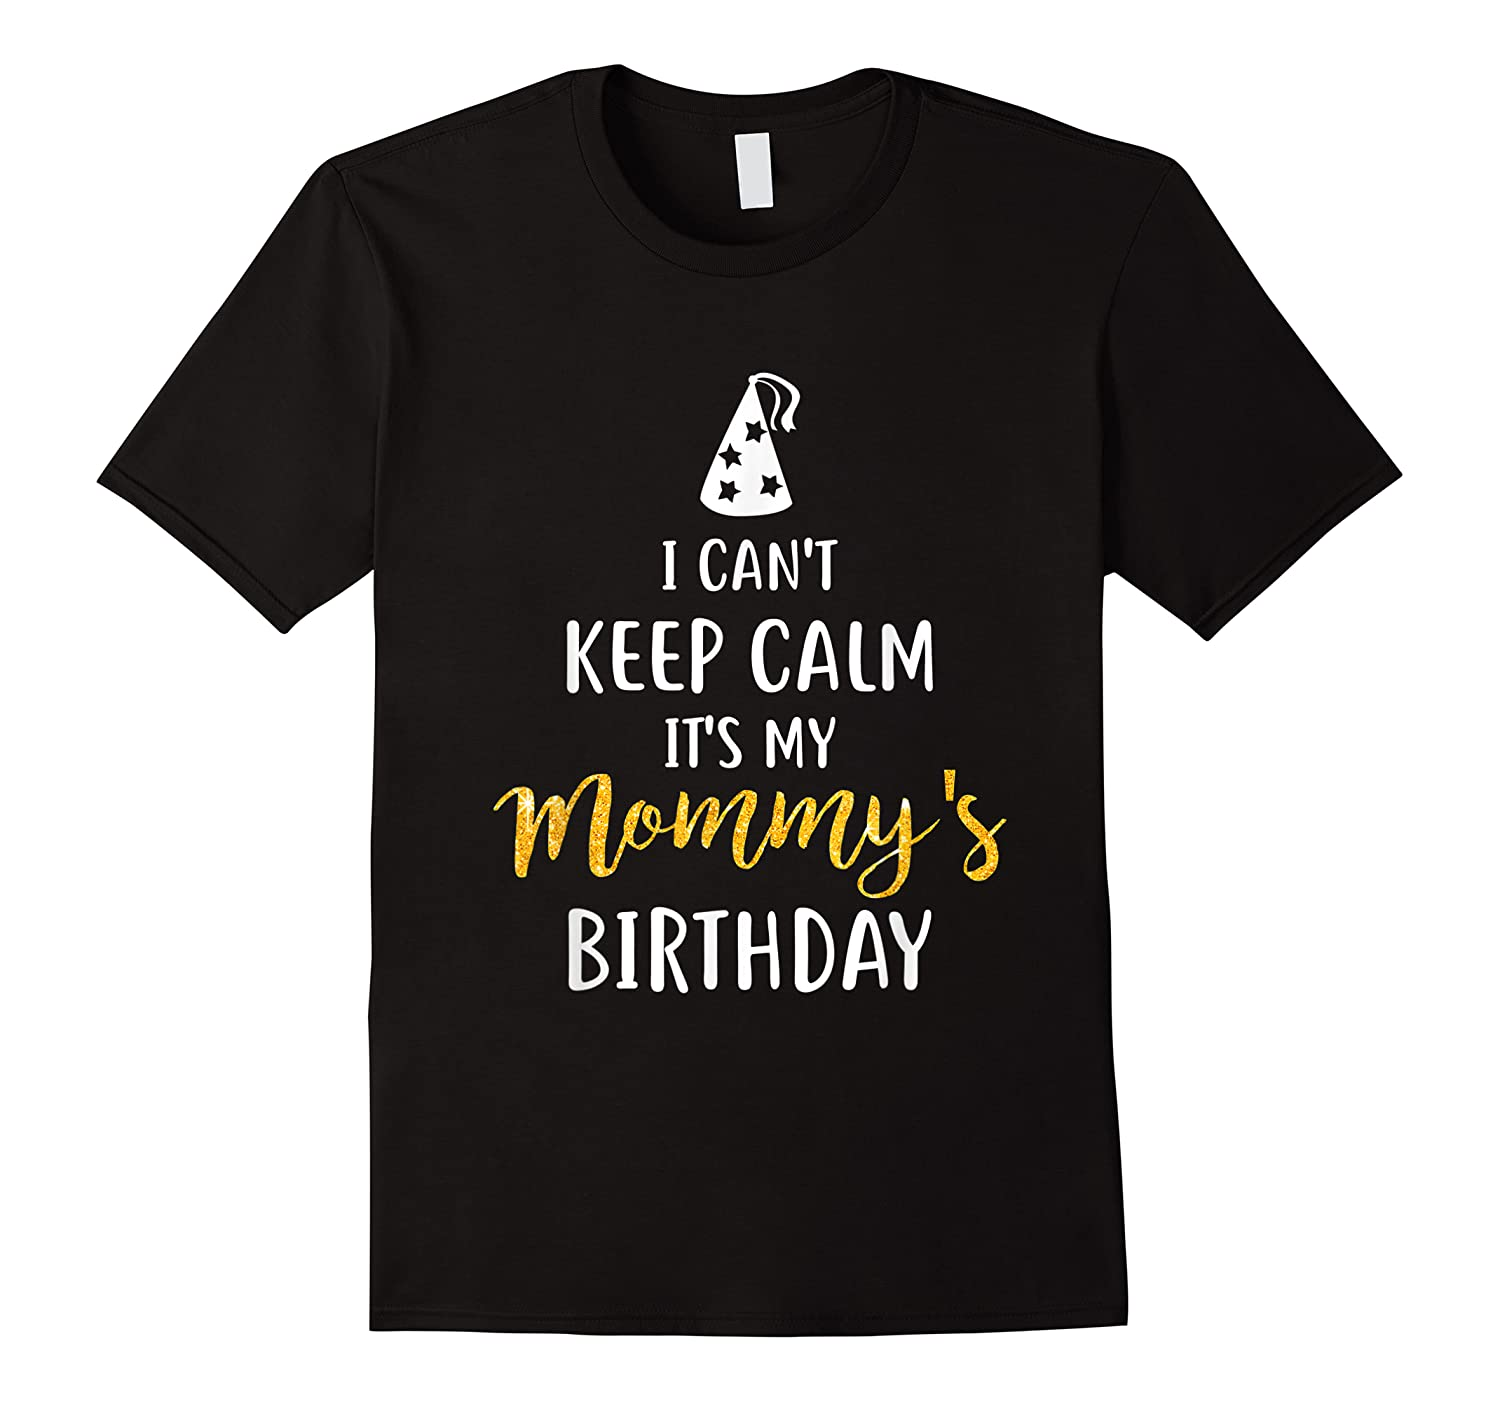 Can T Keep Calm T S My Mommy S Birthday Shirts